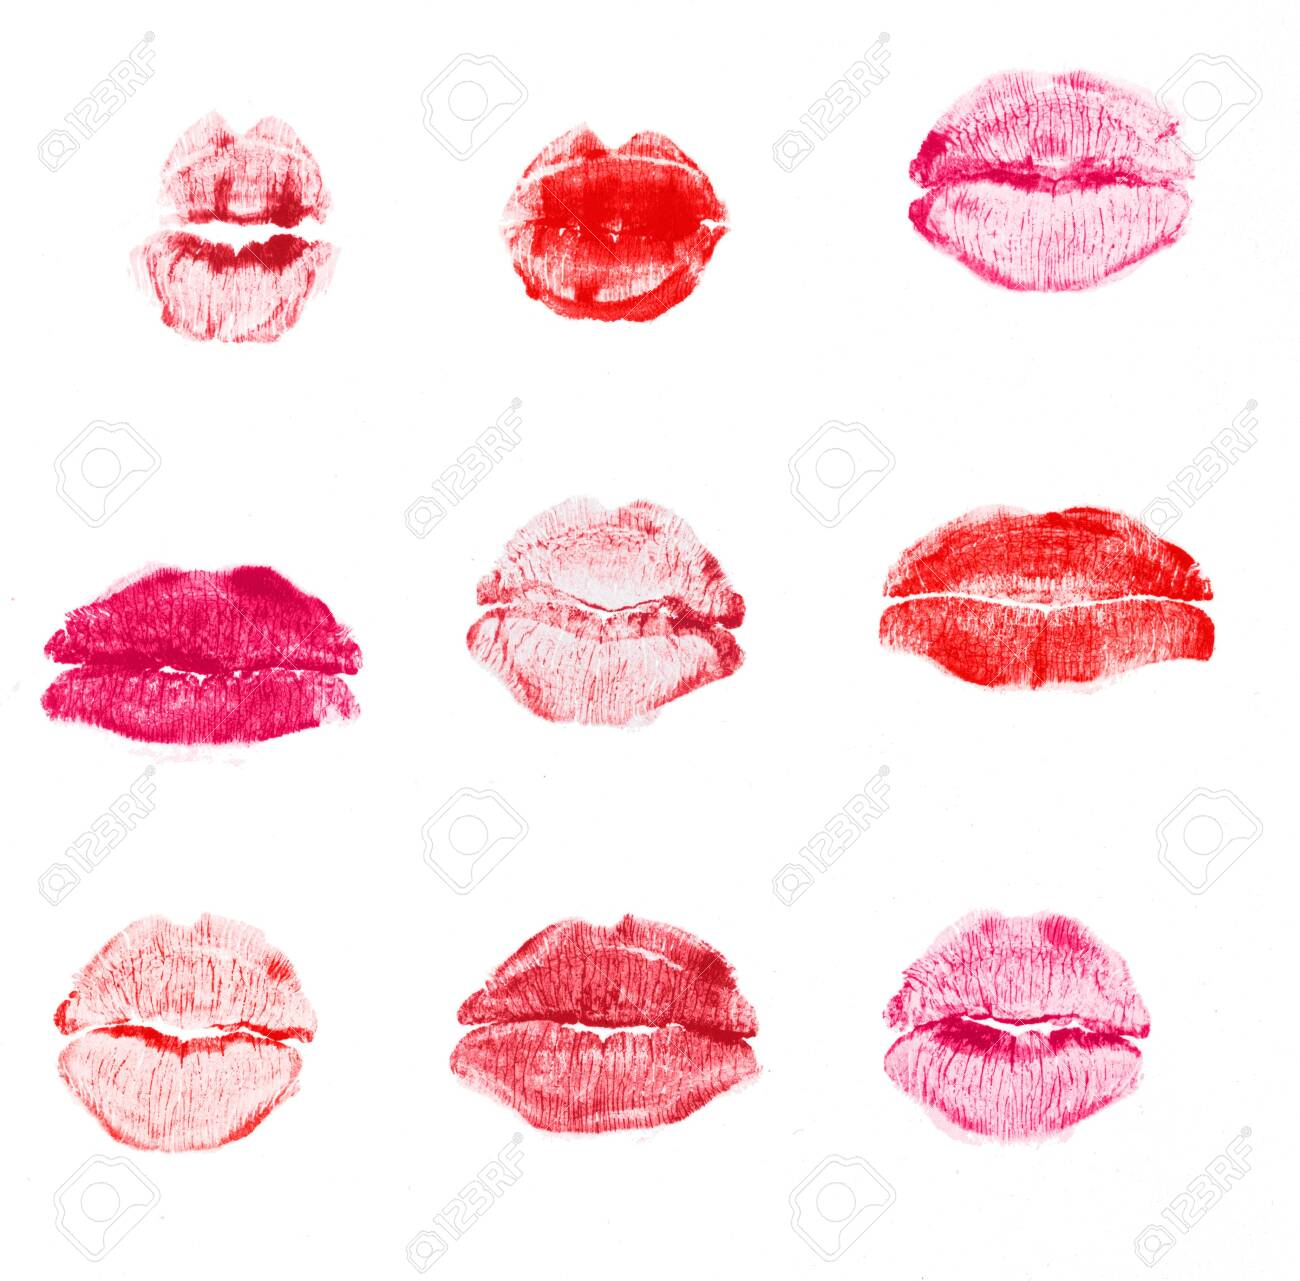 red lipstick kiss isolated on white background - 128152002